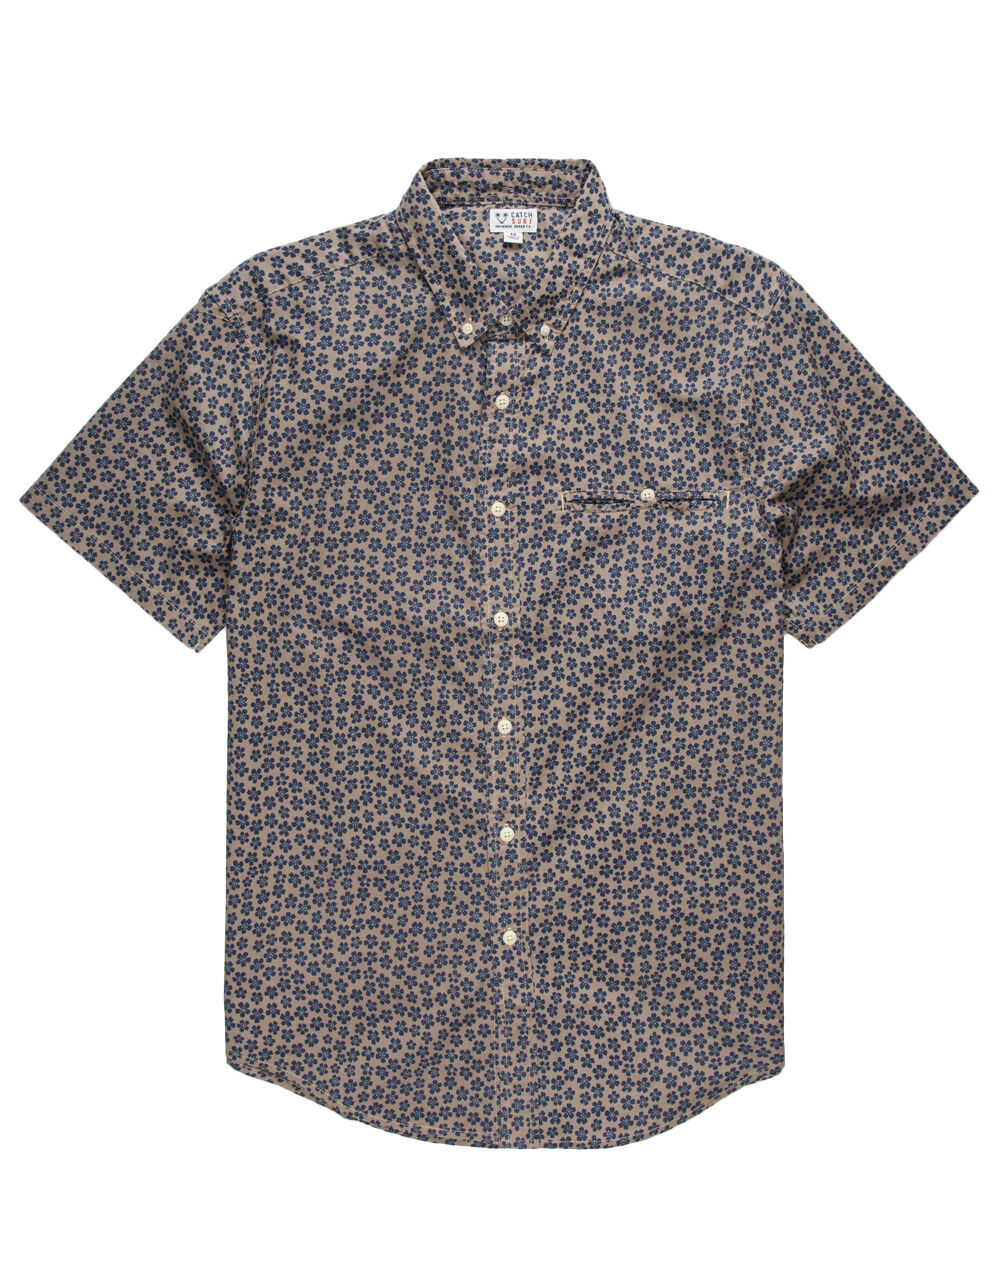 Image of CATCH SURF NED SHIRT